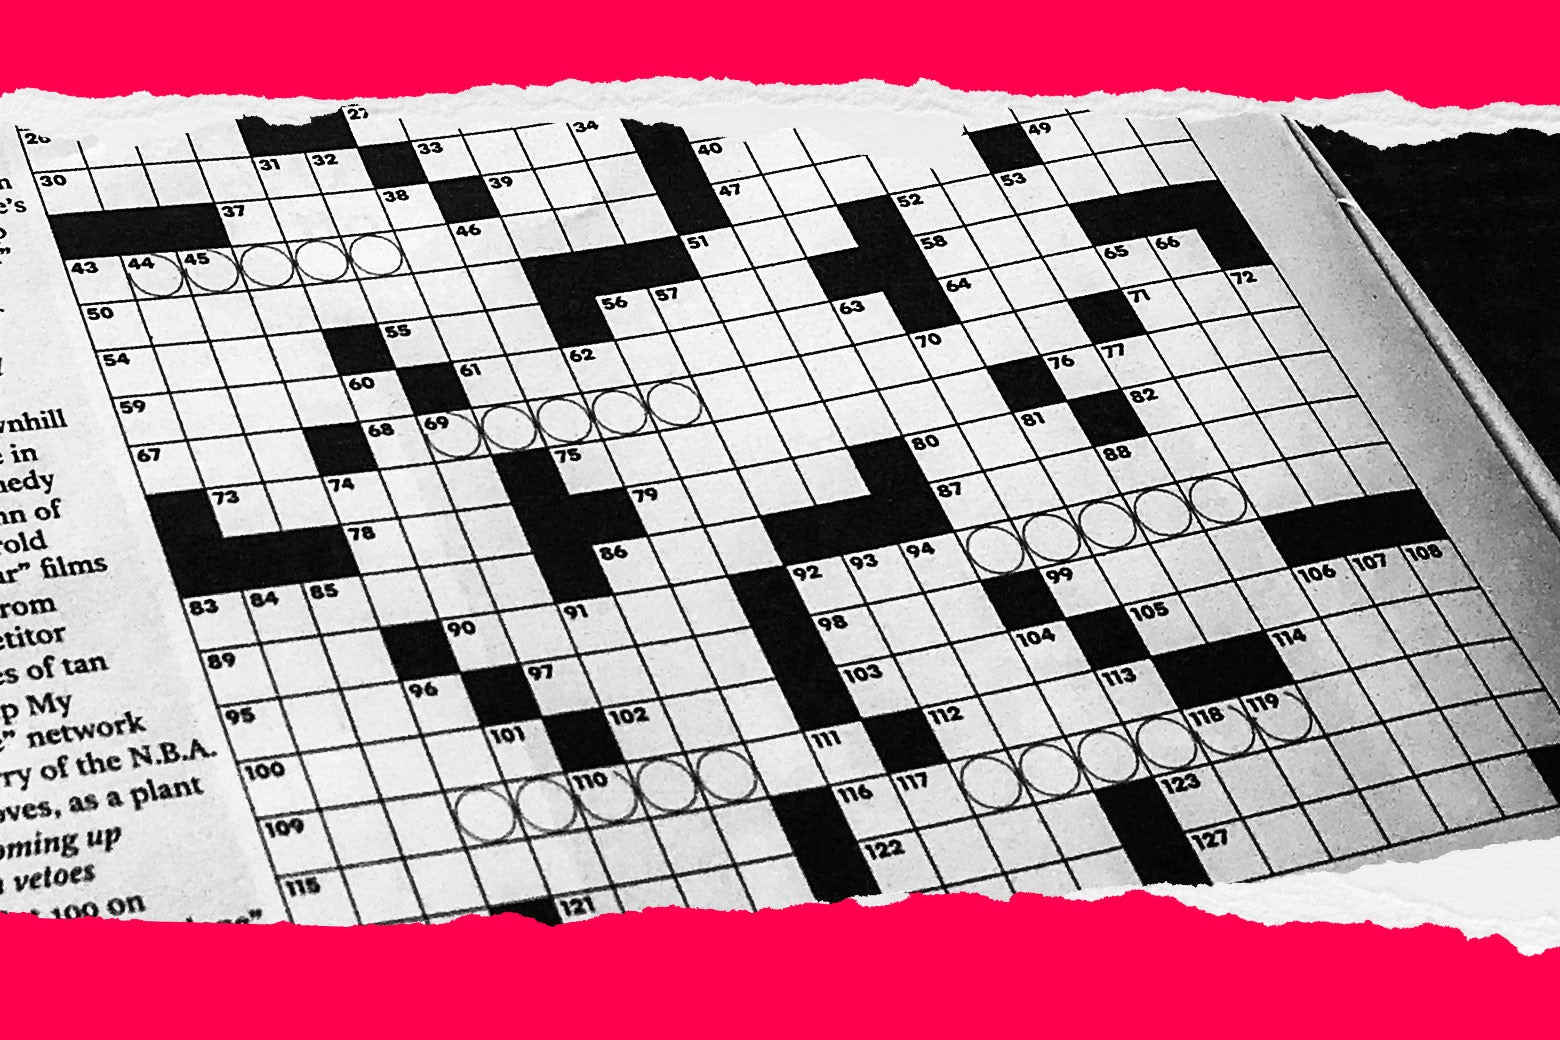 photograph relating to Printable Crossword Puzzles La Times named The NYT crossword puzzles employ the service of of an ethnic slur states a good deal